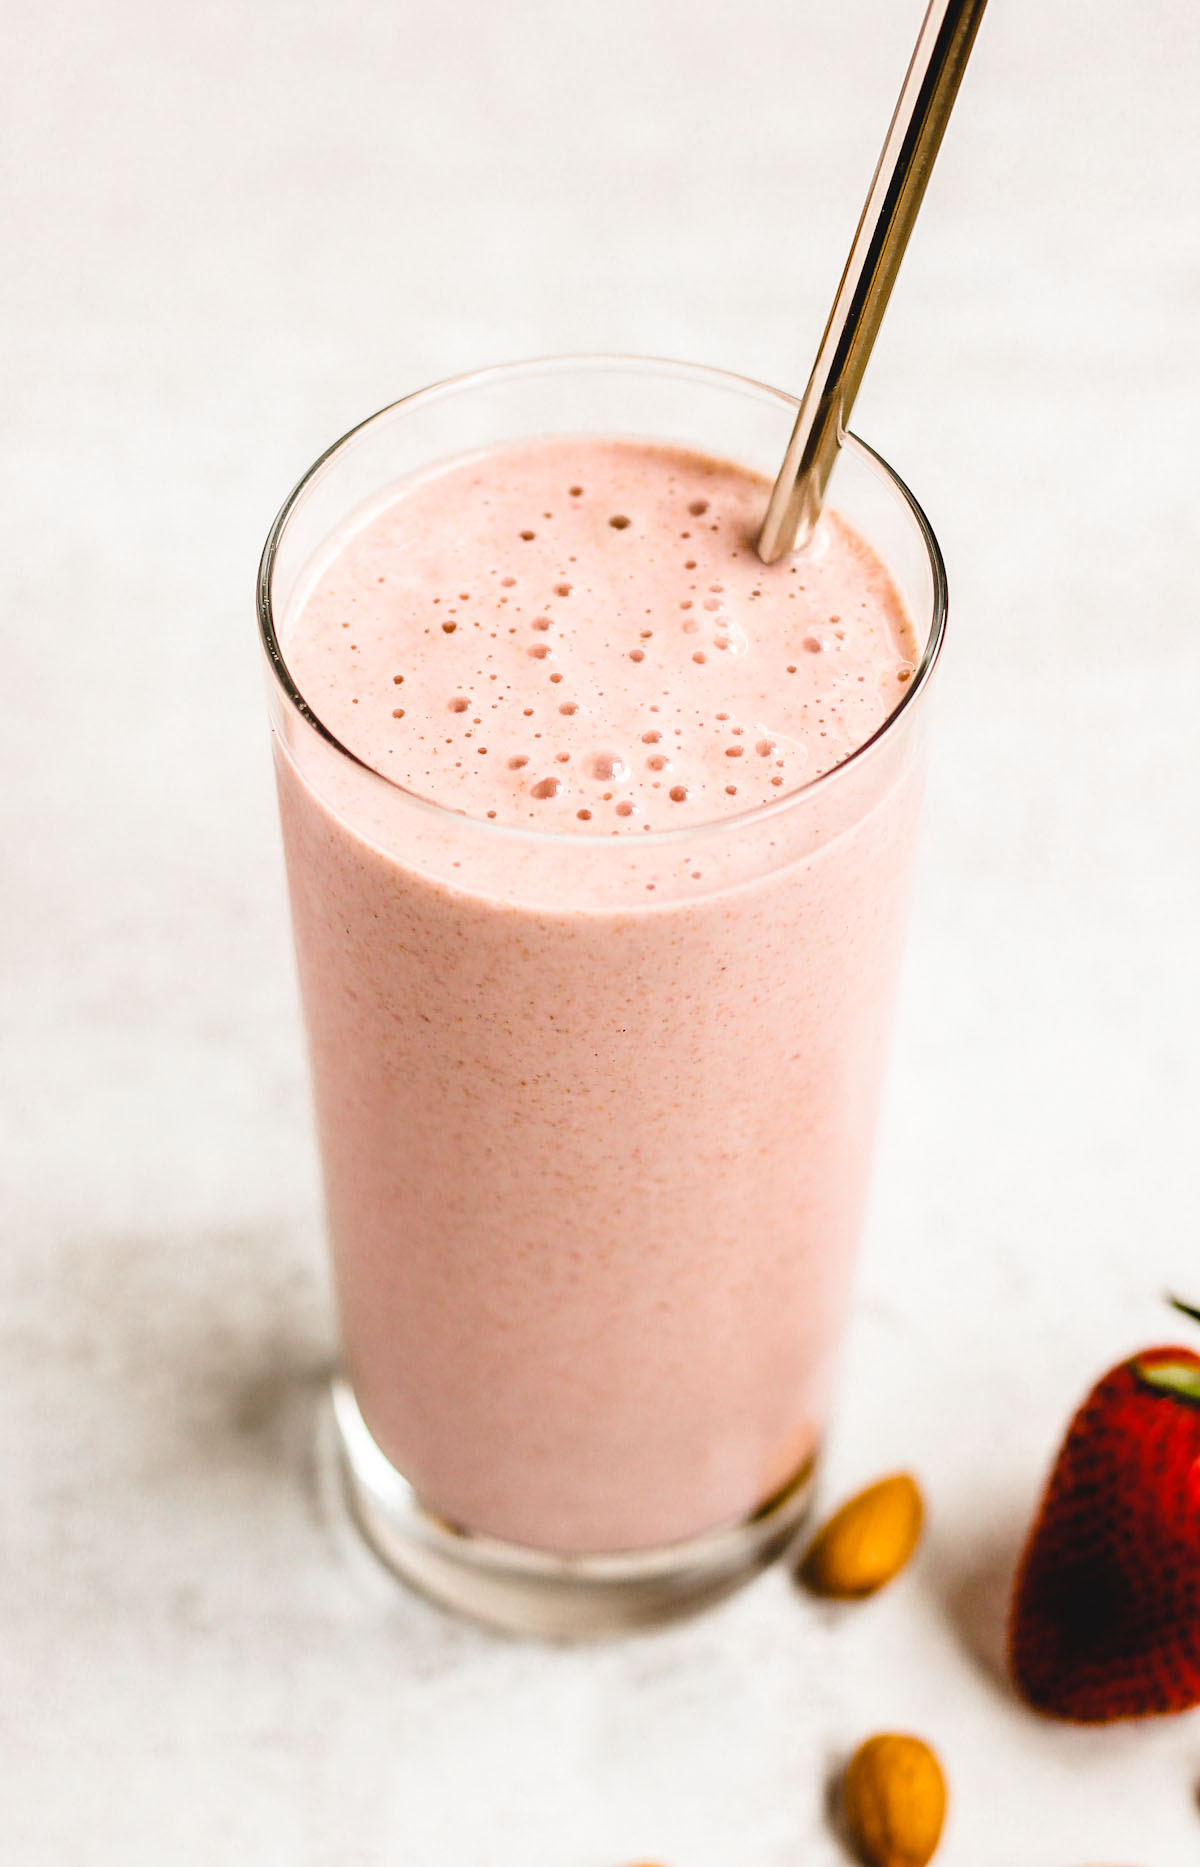 side angle view of strawberry almond smoothie in a glass with a stainless steel straw